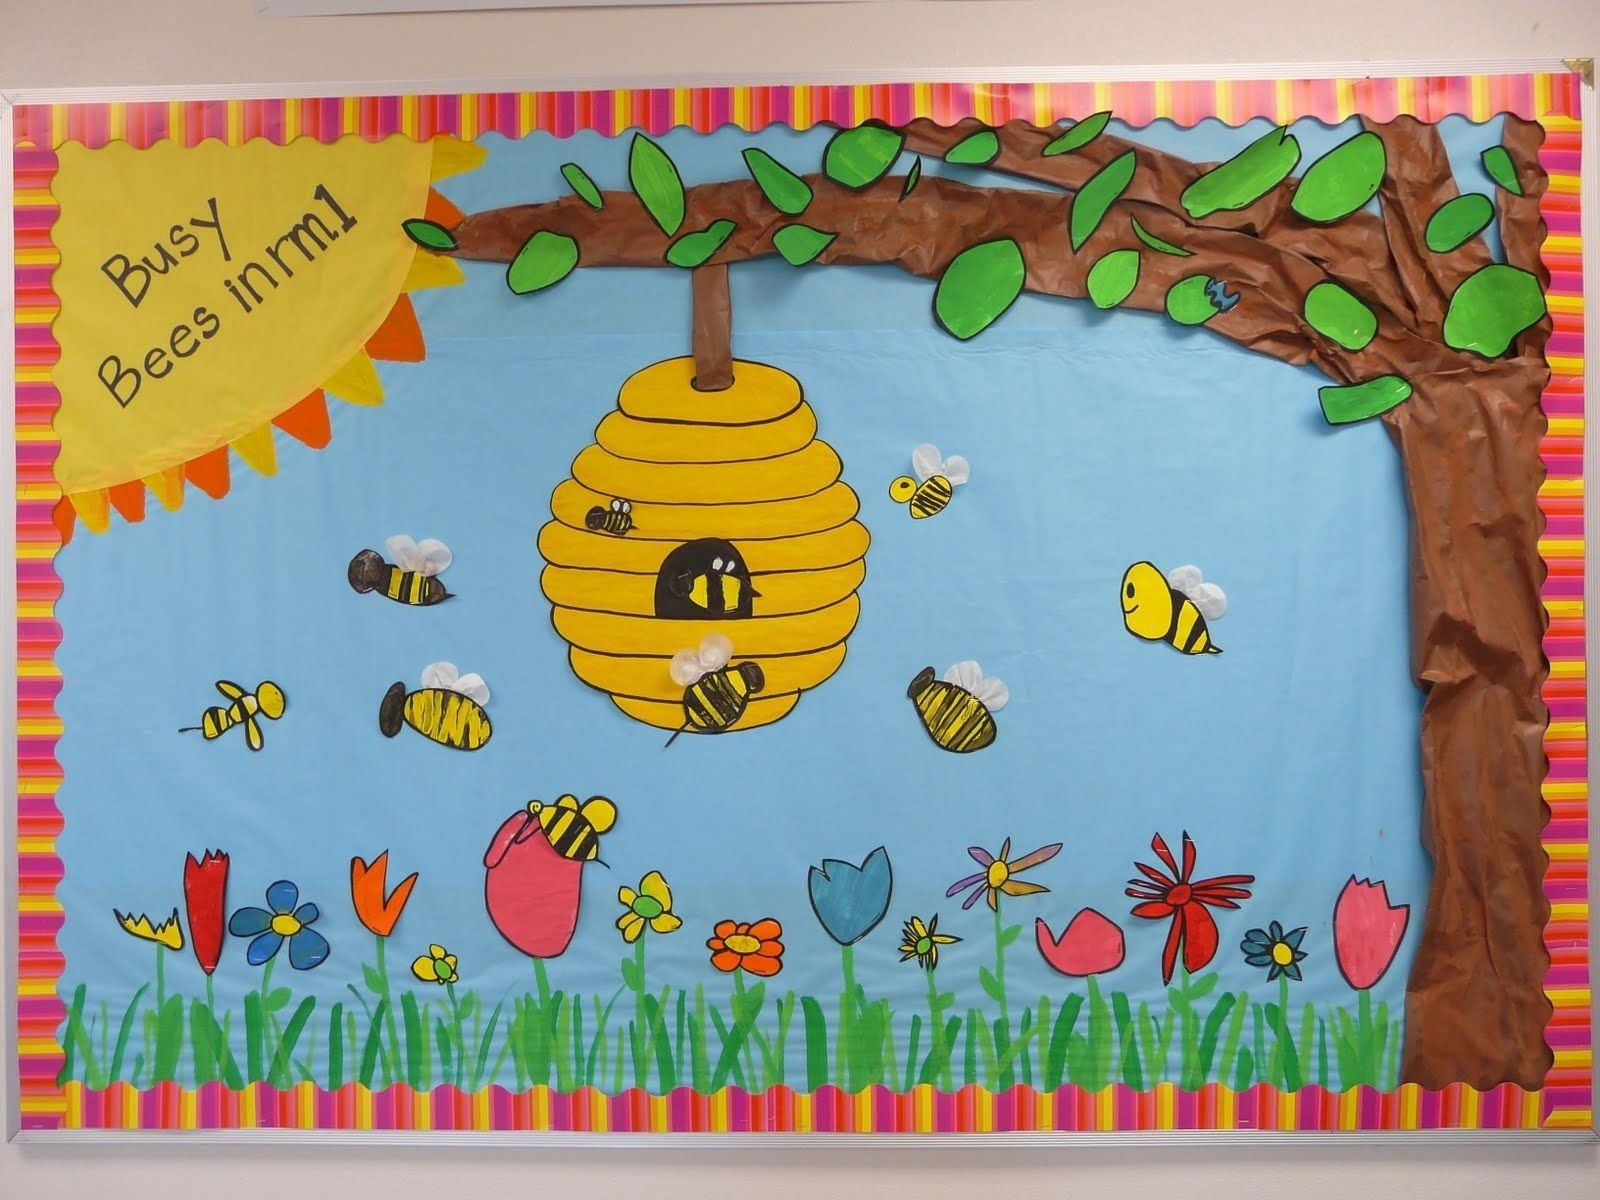 10 Spectacular April Bulletin Board Ideas For Teachers spring bulletin board ideas postedbulletin boards at 1004 am